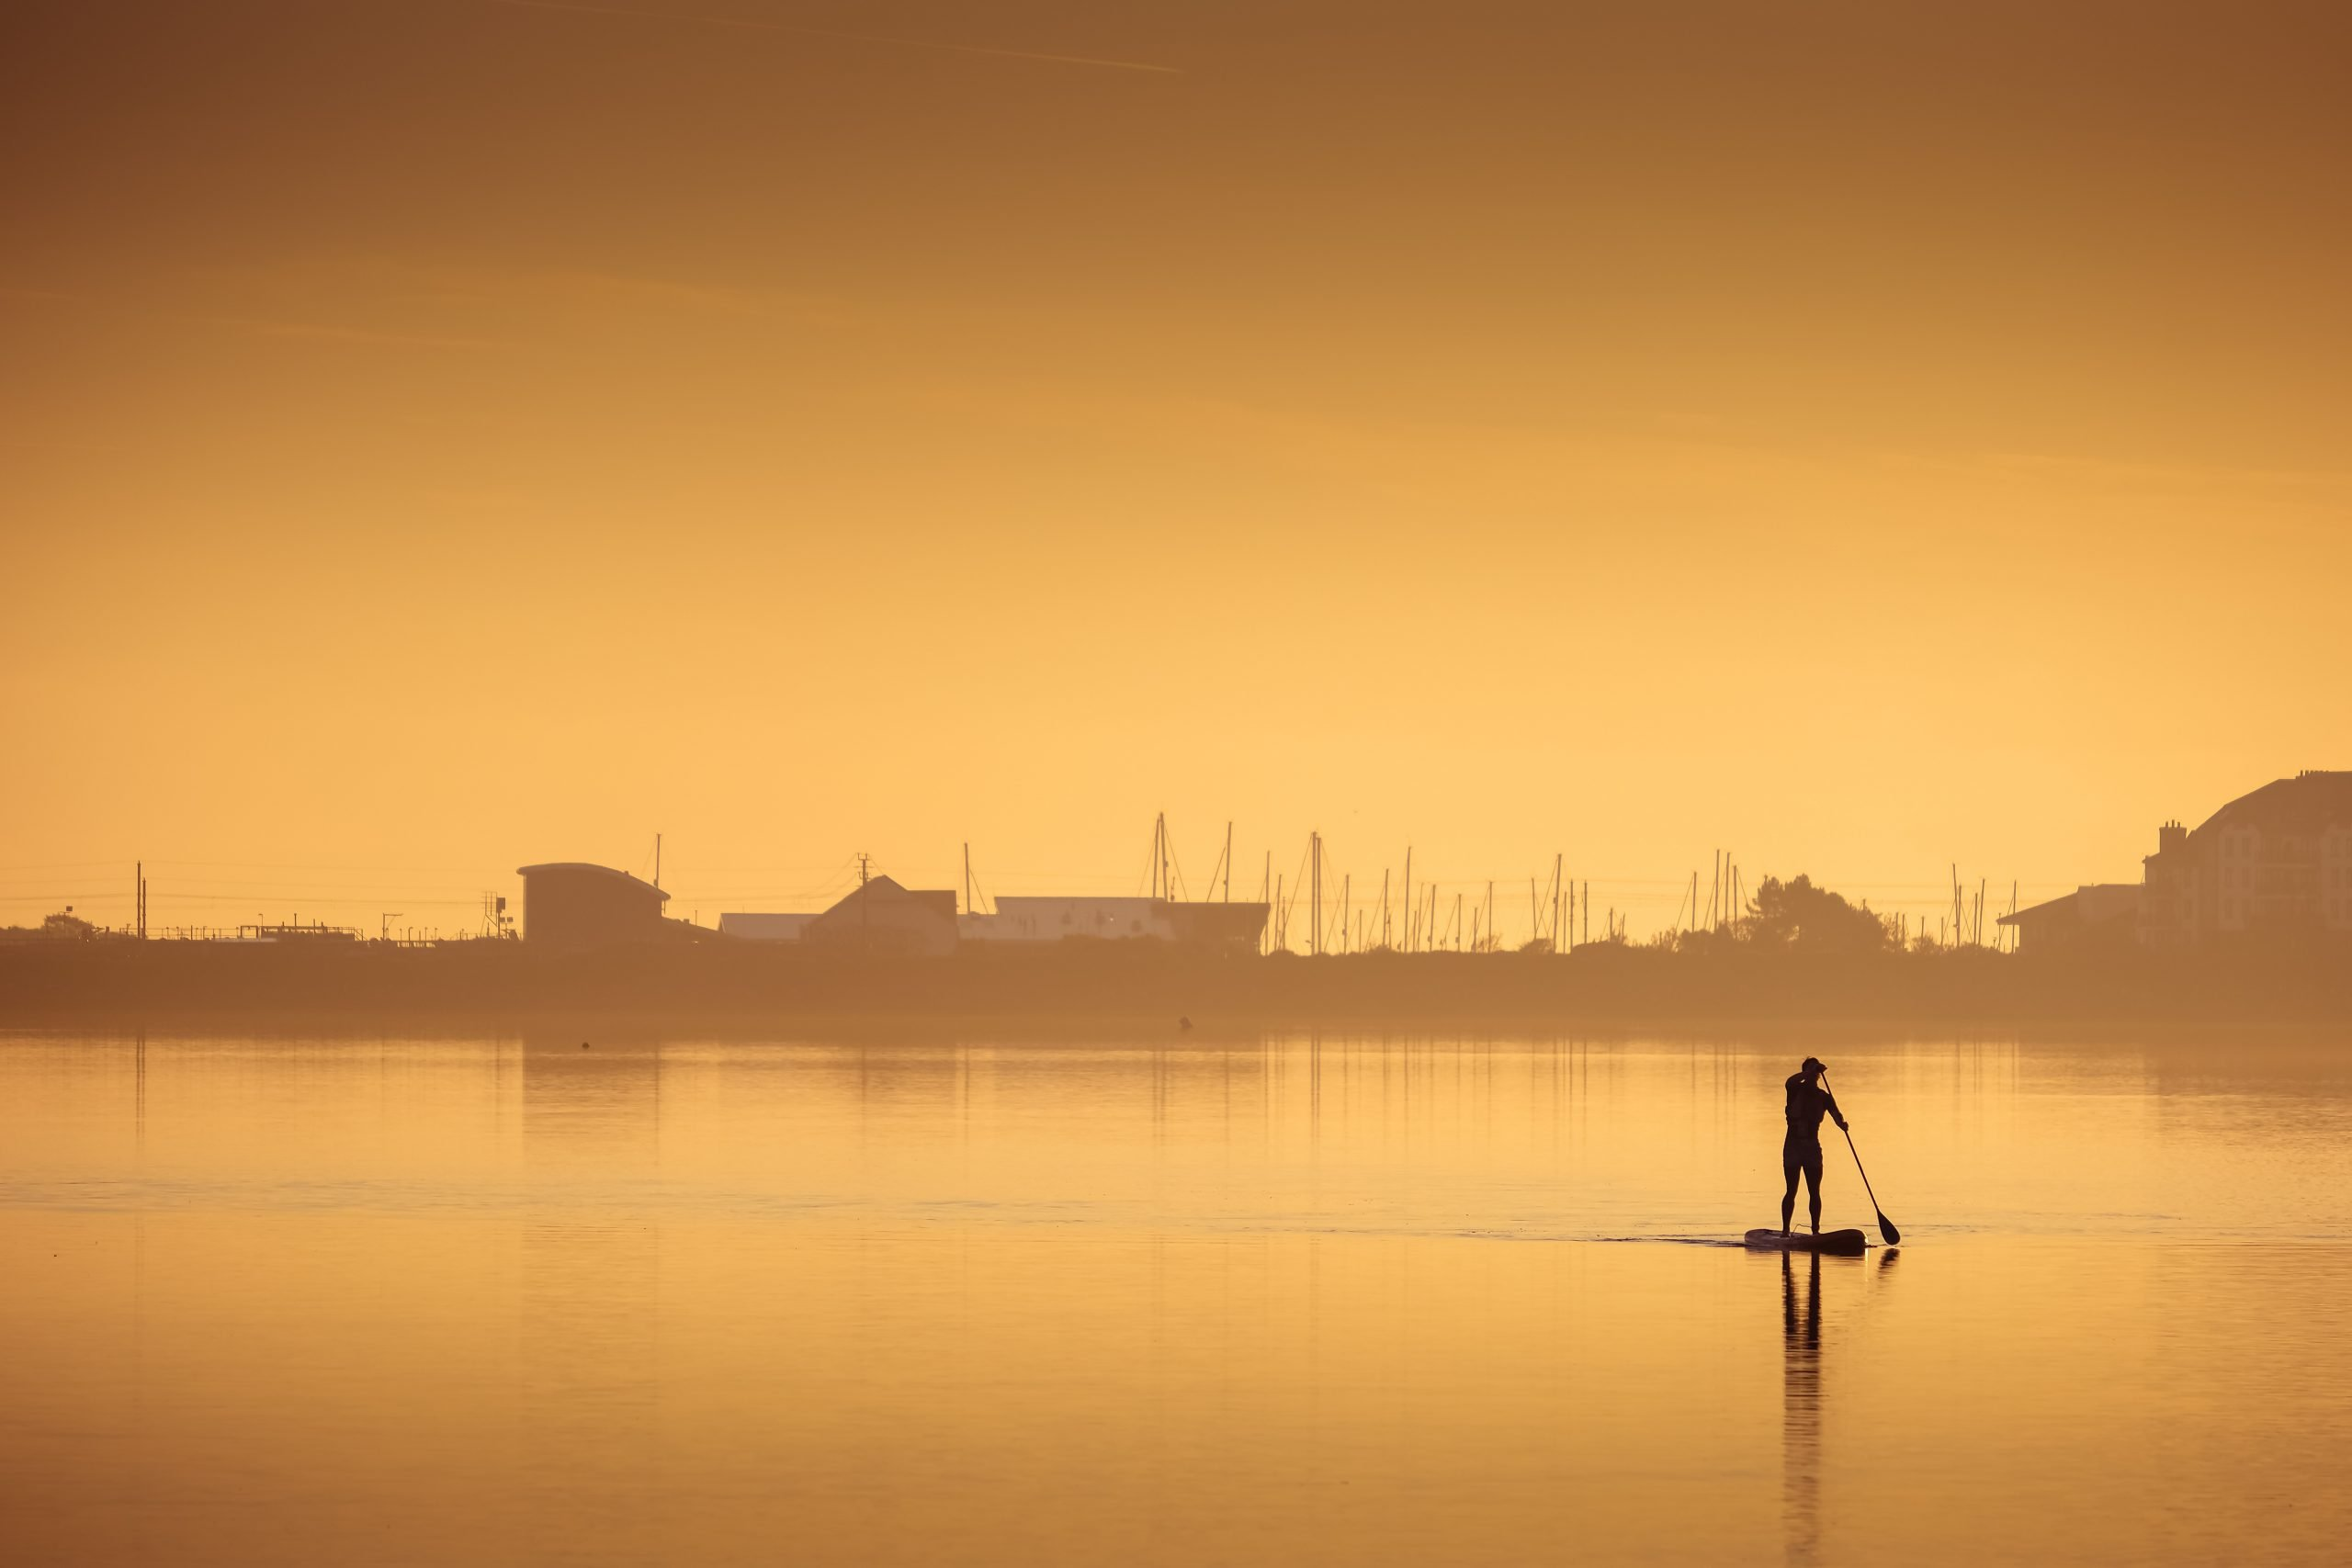 stand-up-paddle-fiona-madden-photography